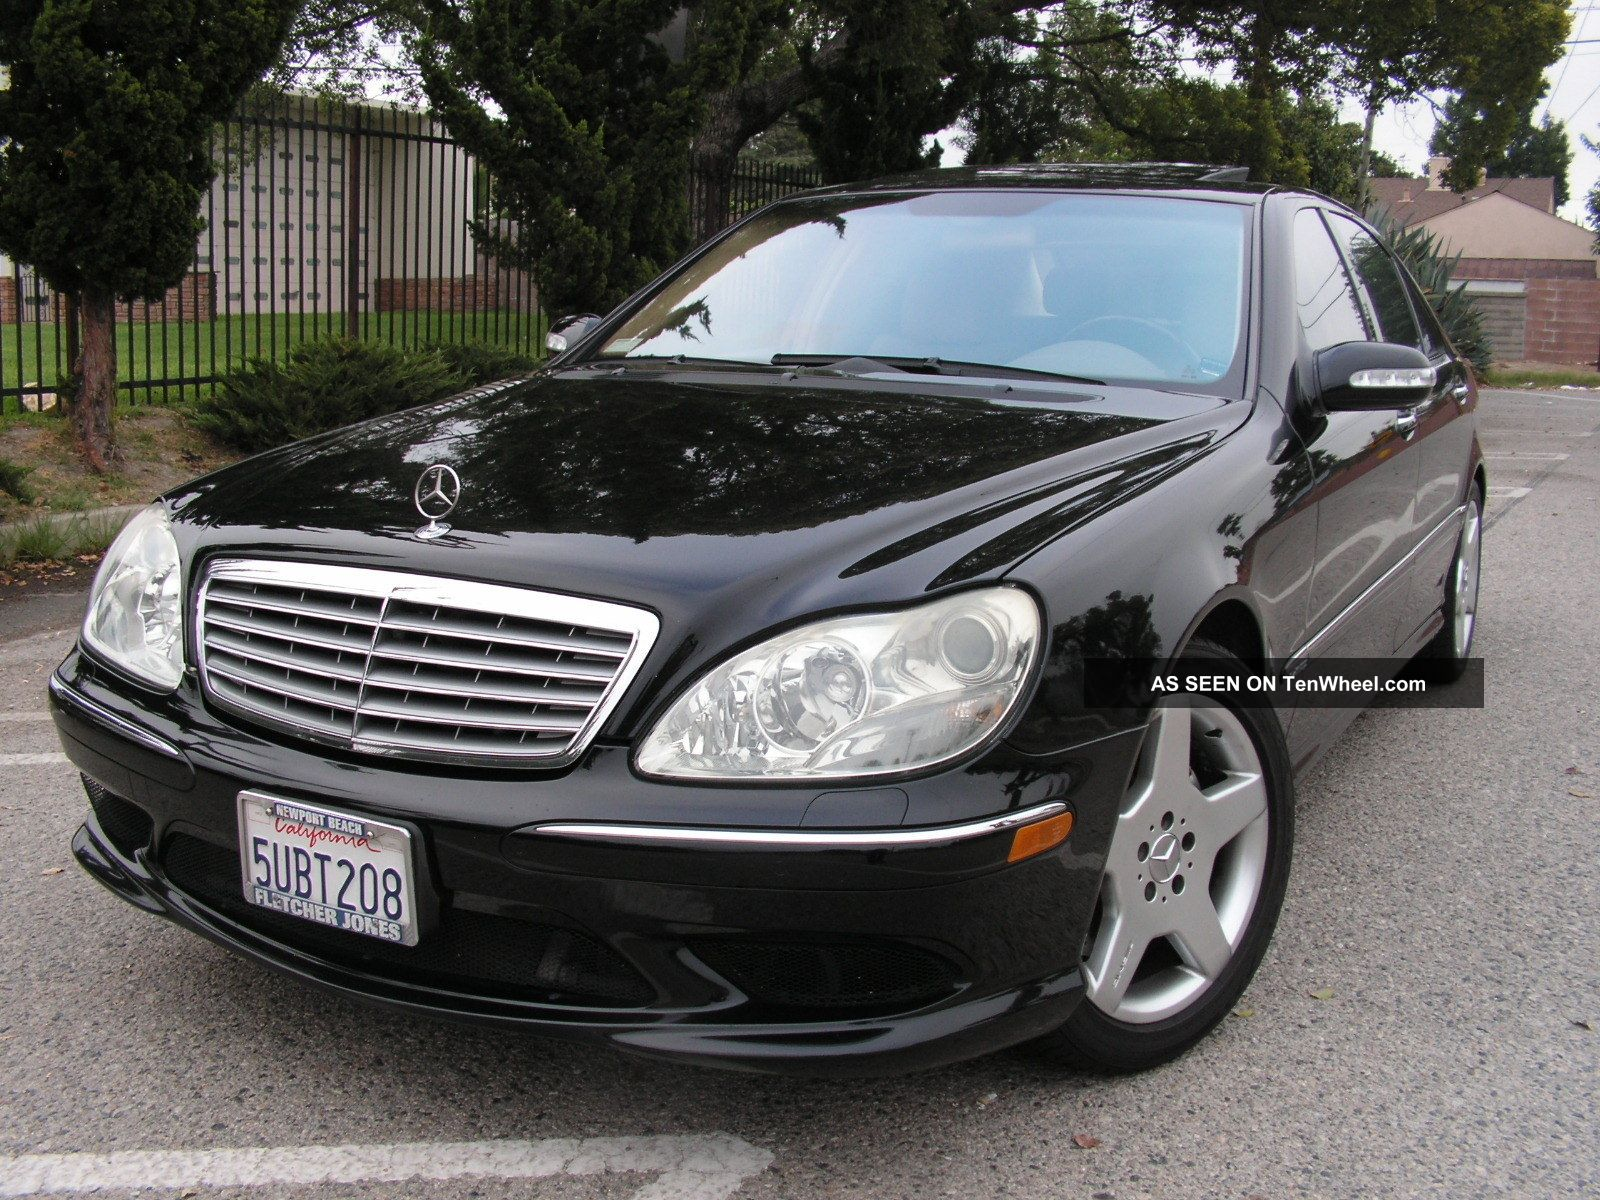 2003 mercedes benz s600 amg twin turbo 493hp 590tq for Mercedes benz s600 coupe